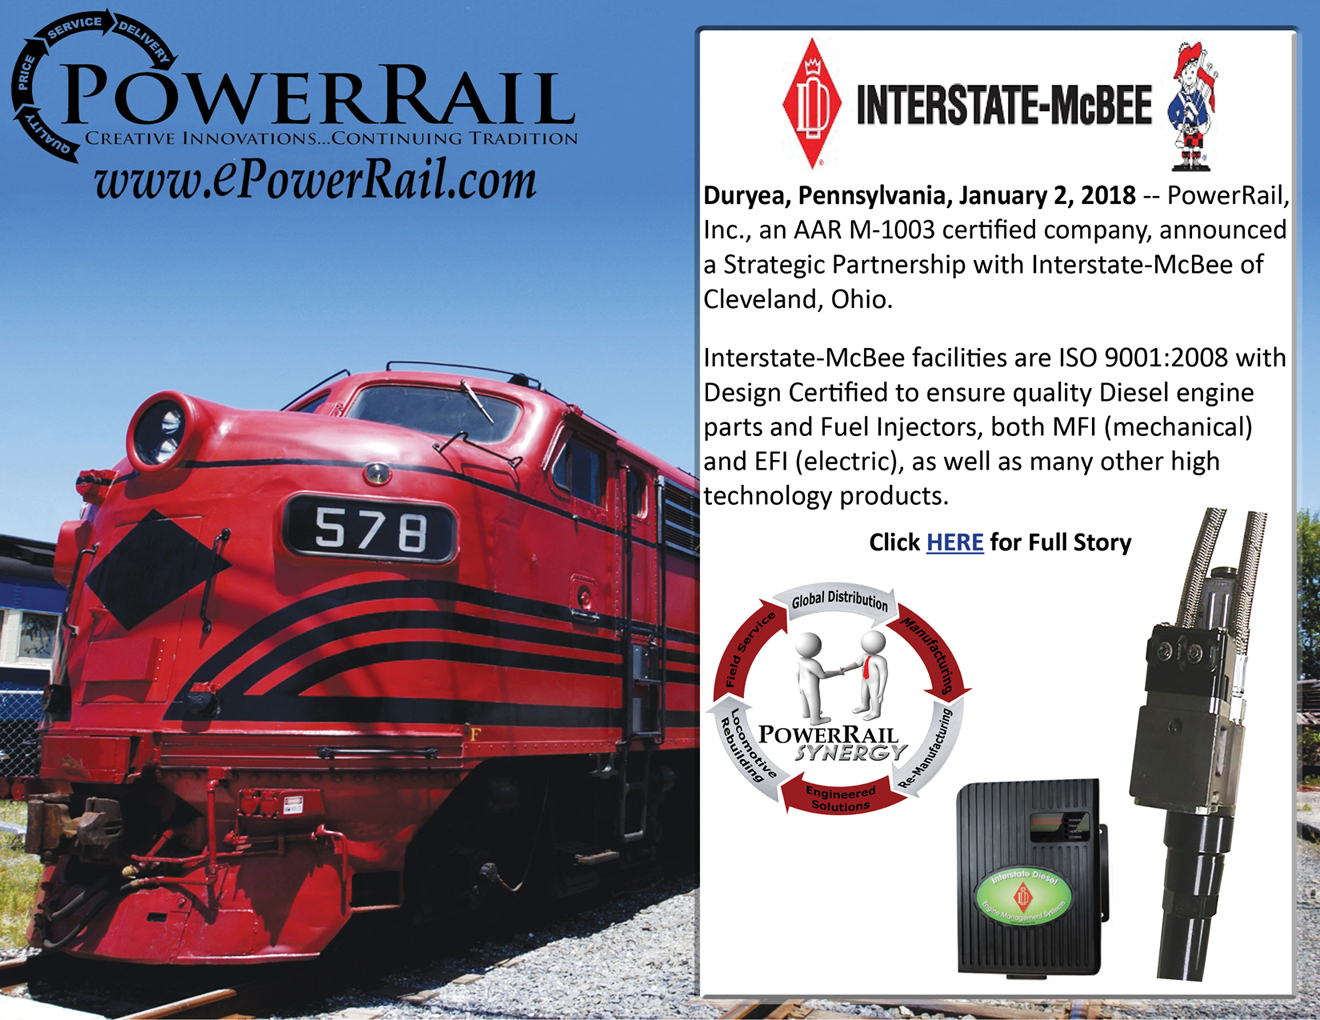 PowerRail, Inc. Announces New Partnership